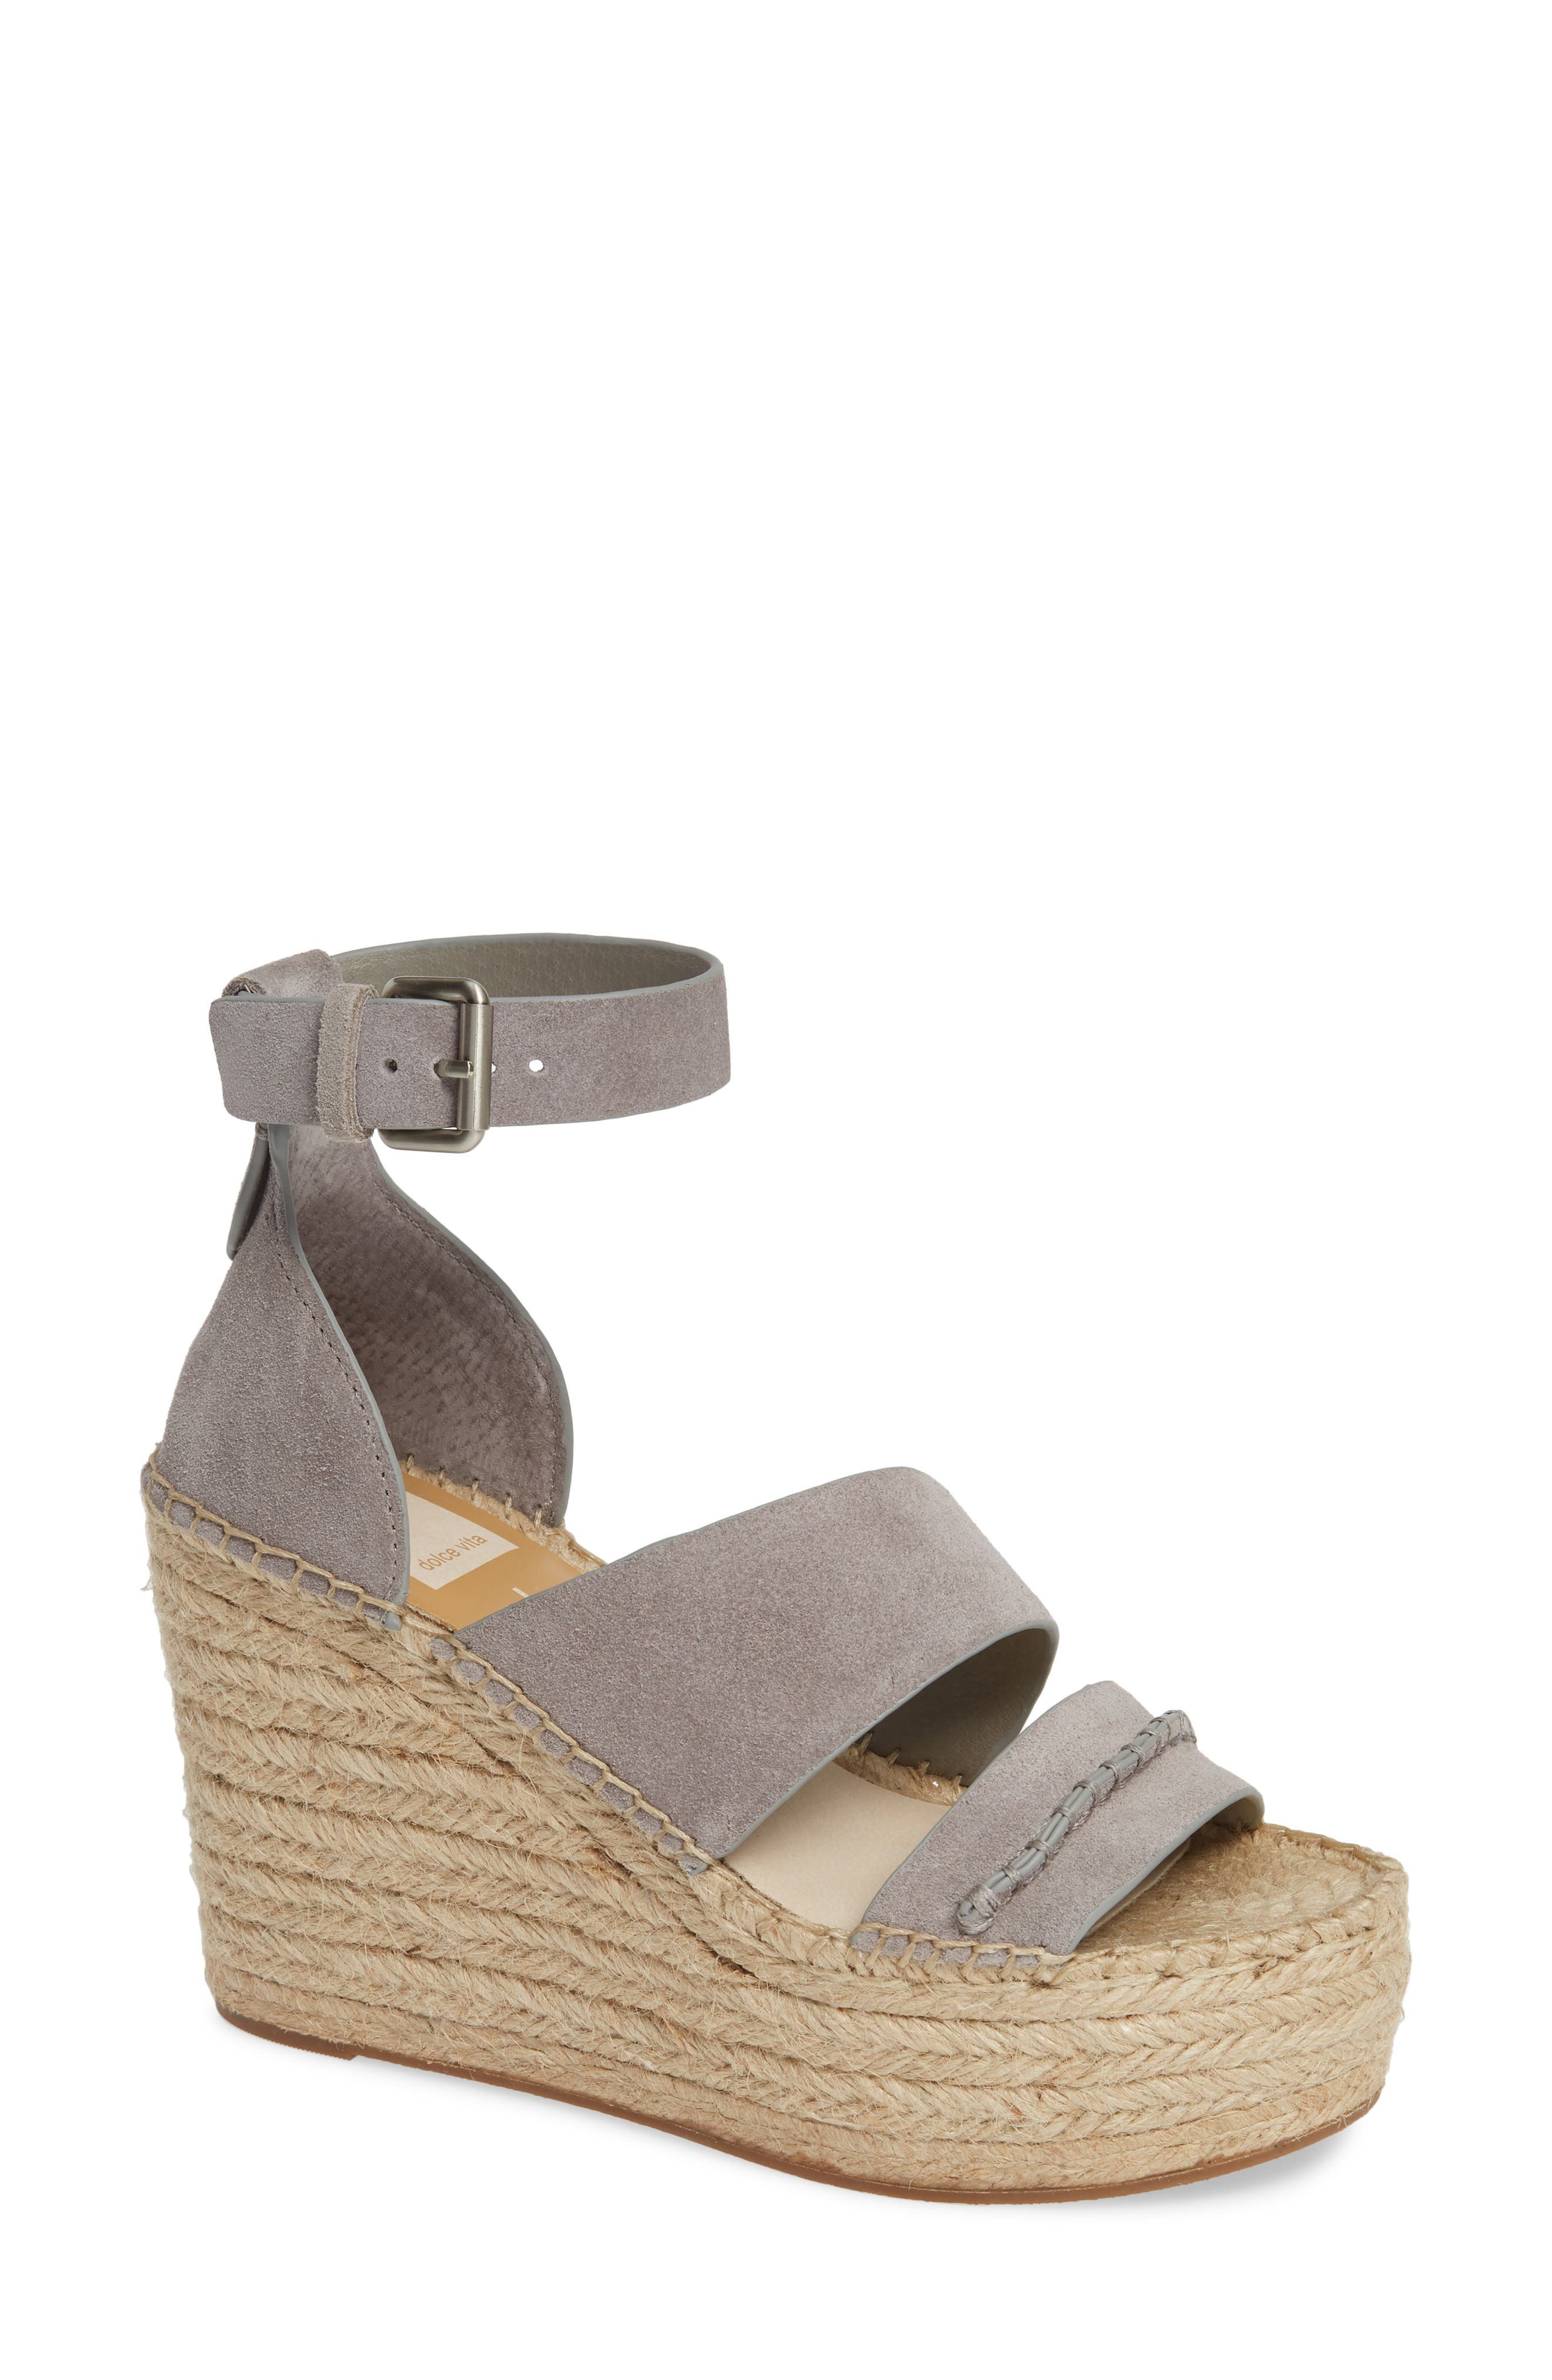 a256ed8520f Sandals Dolce Vita Shoes for Women